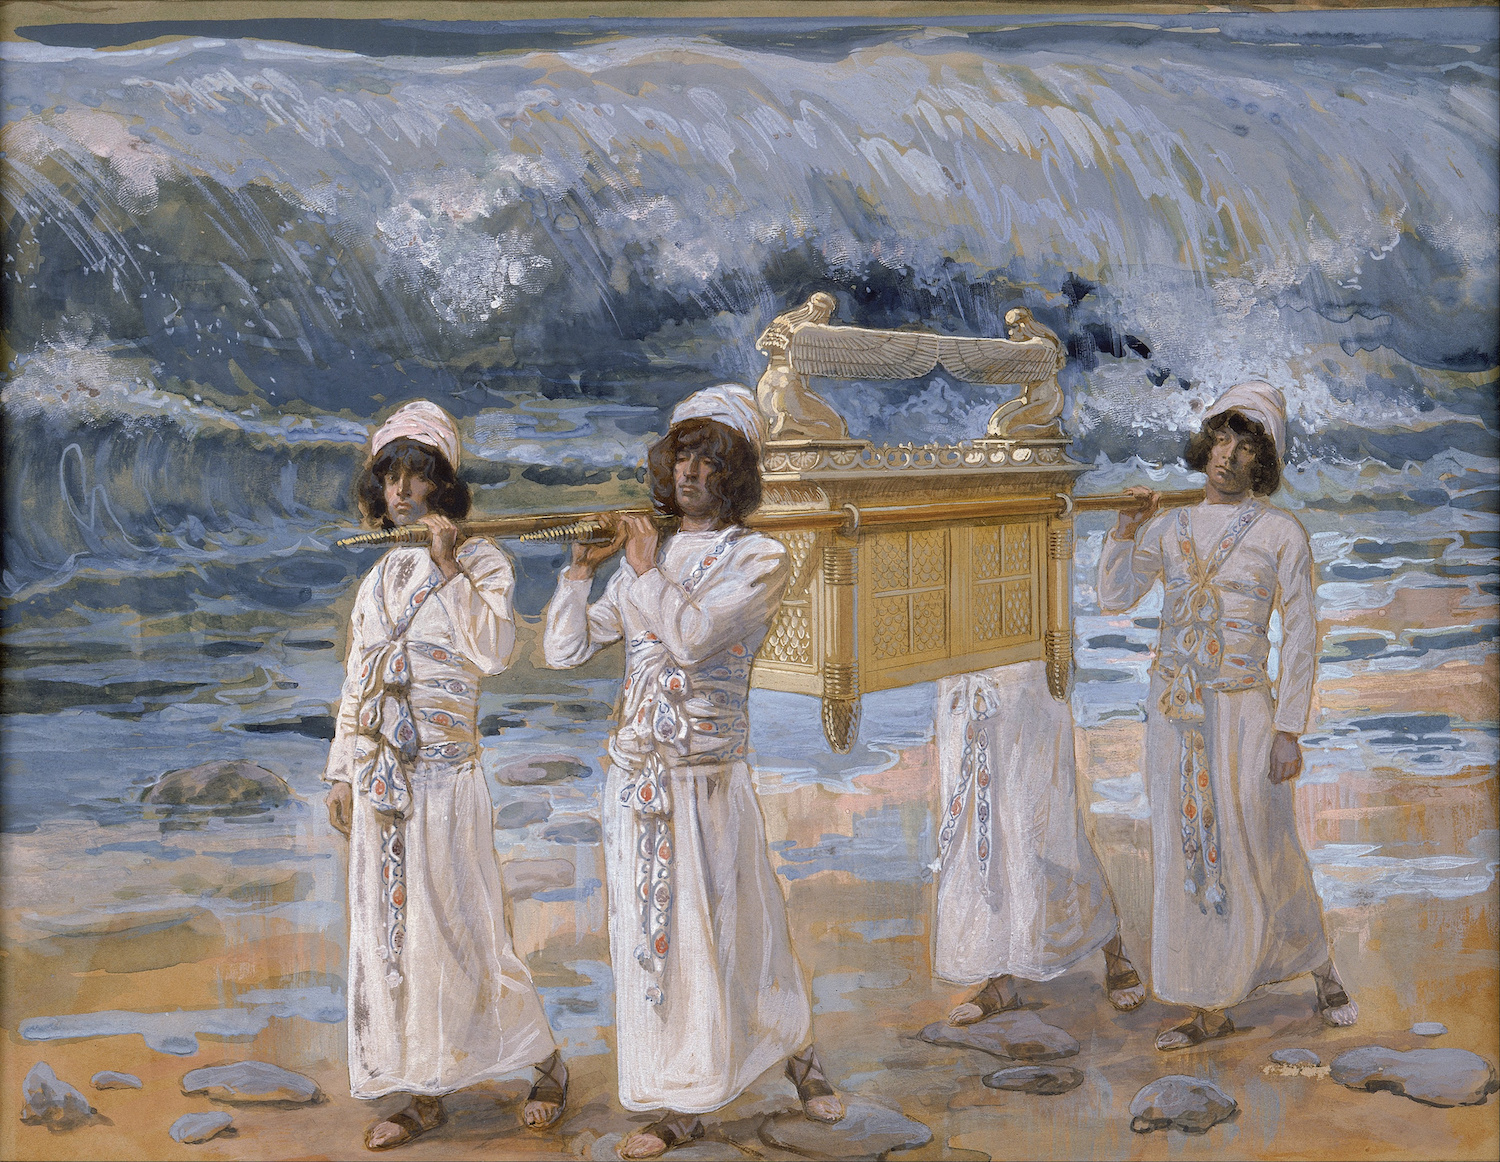 From James Tissot's The Ark Passes Over the Jordan. Google Art Project.